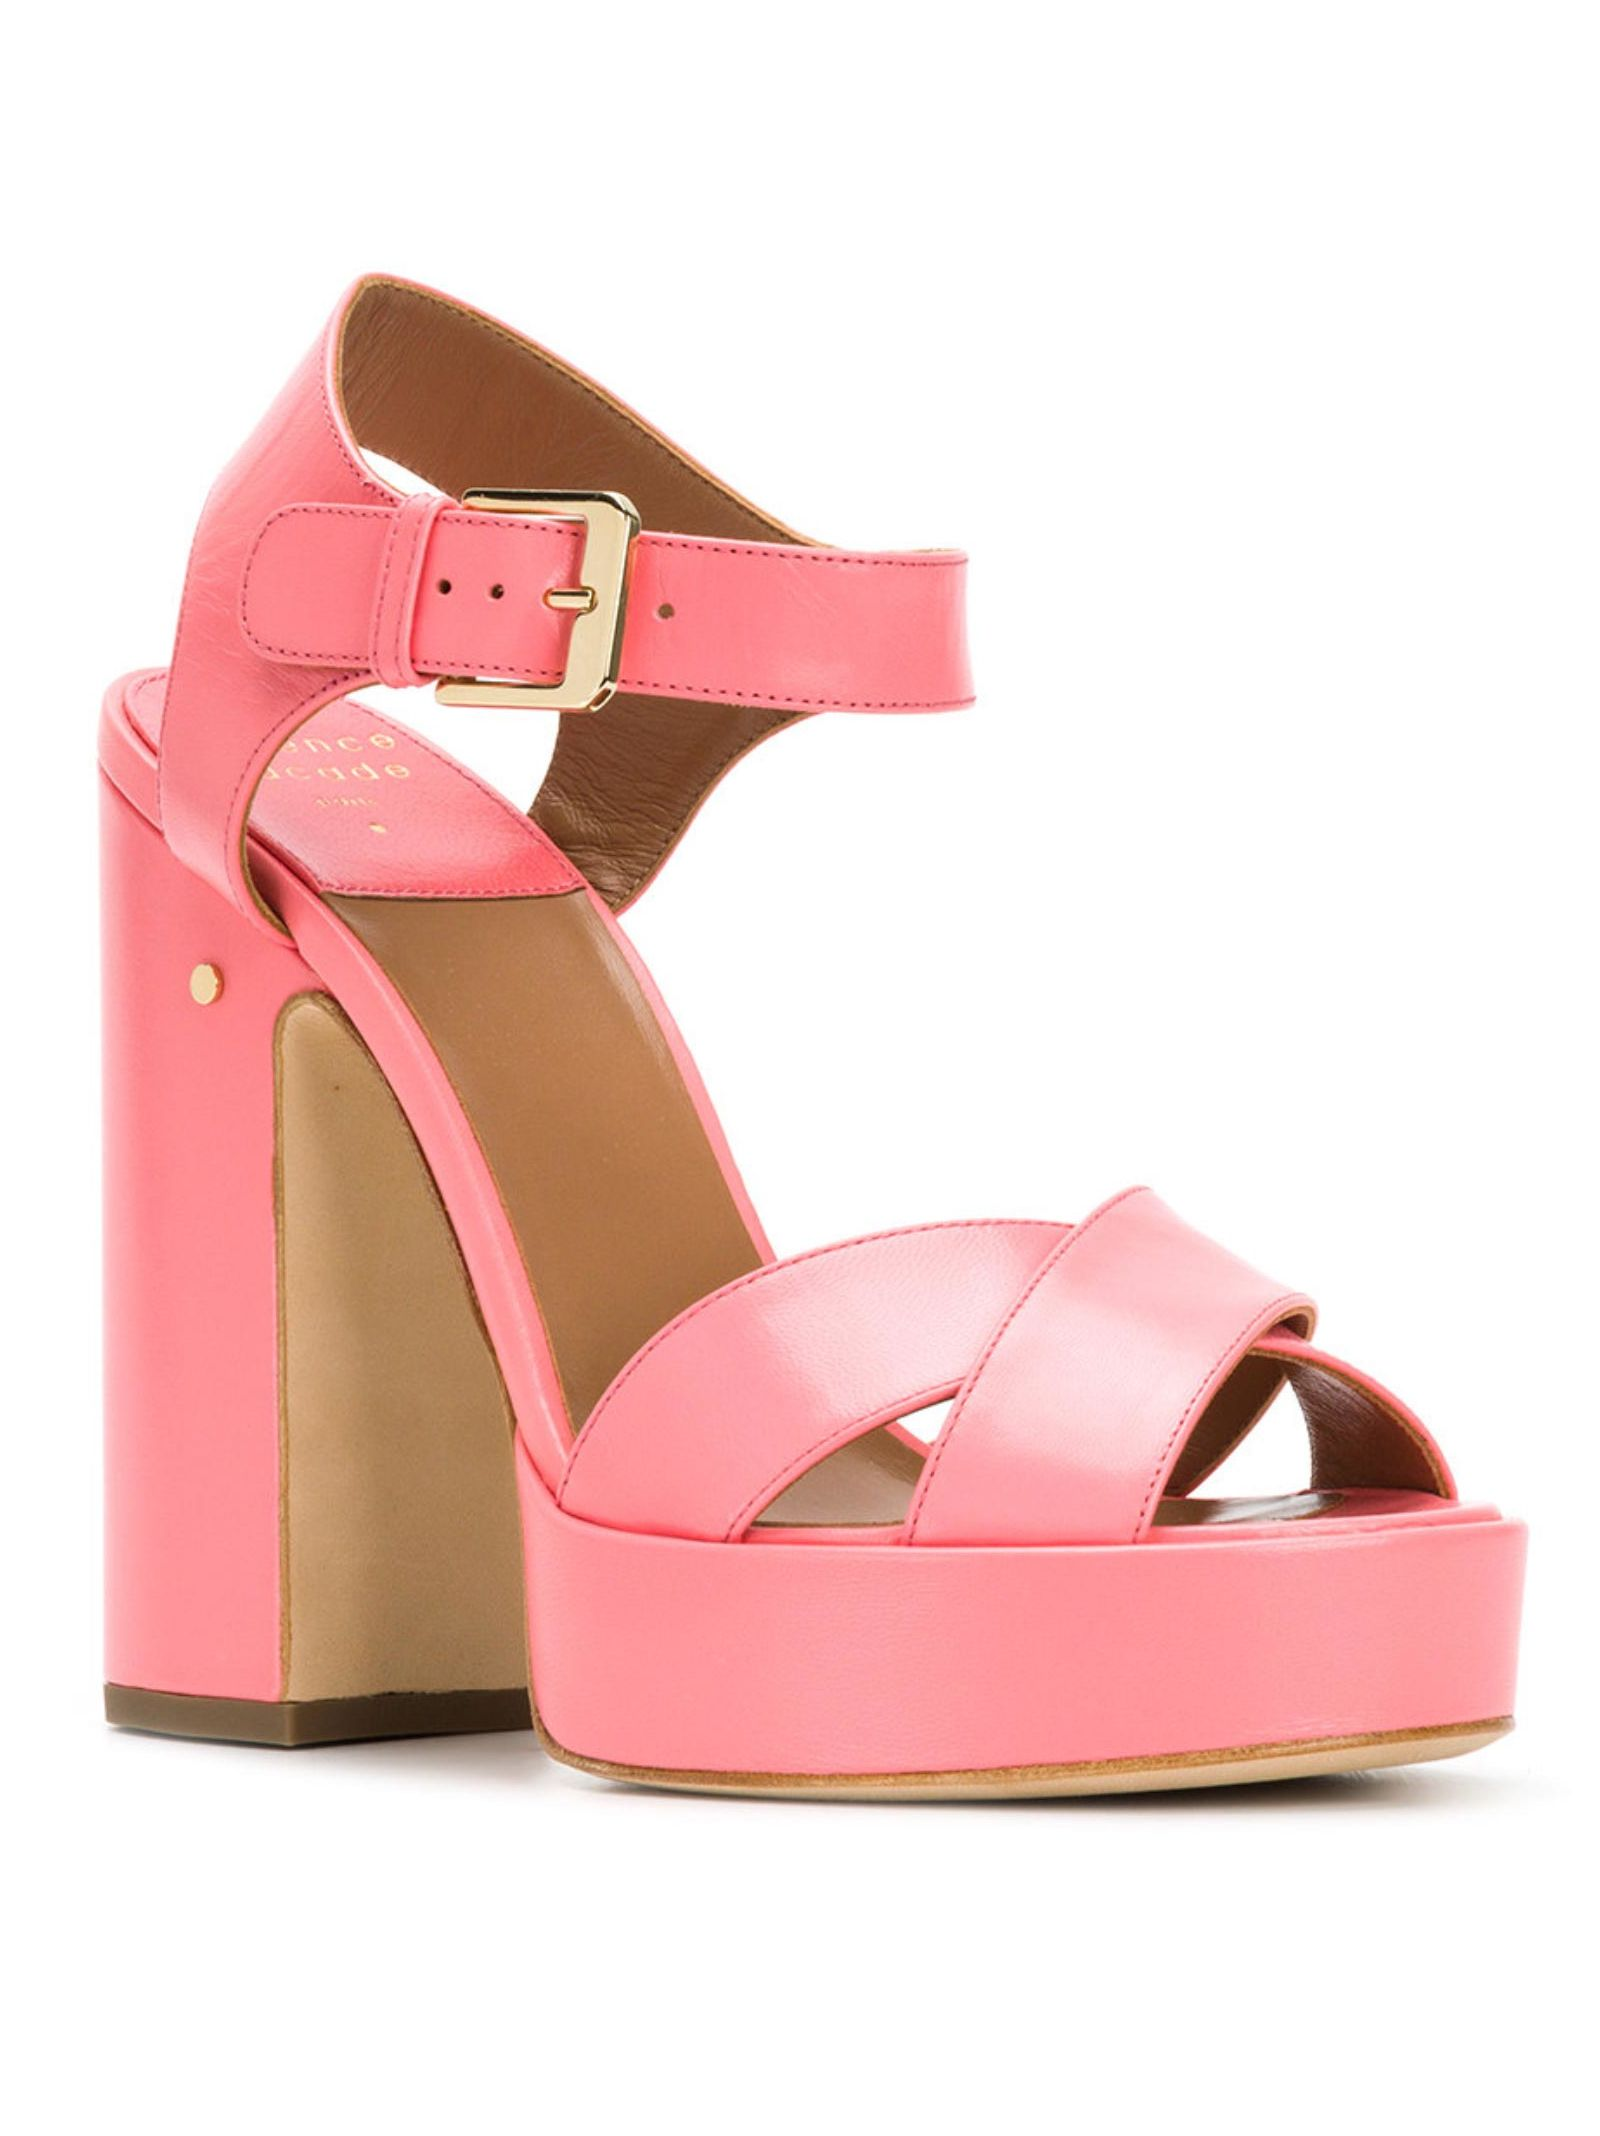 Pick A Best Cheap Price Rosan sandals - Pink & Purple Laurence Dacade Outlet Wiki Sale Pay With Paypal Finishline Sale Online Top Quality y2N0Xa7